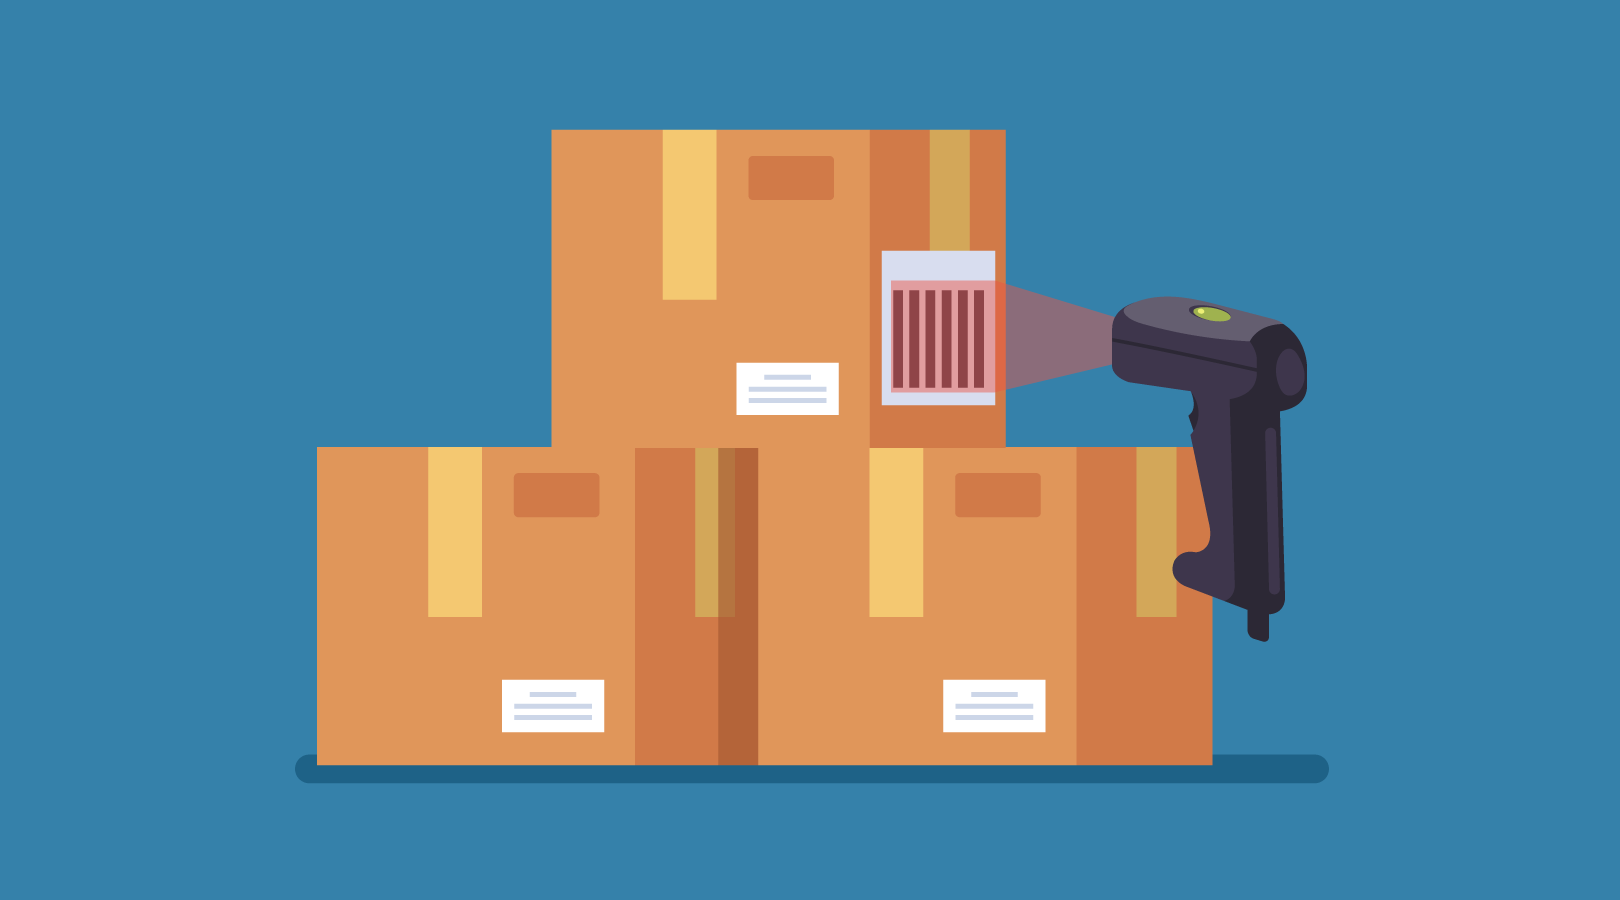 SKUs: What Are They & Why Are They Important to eCommerce?